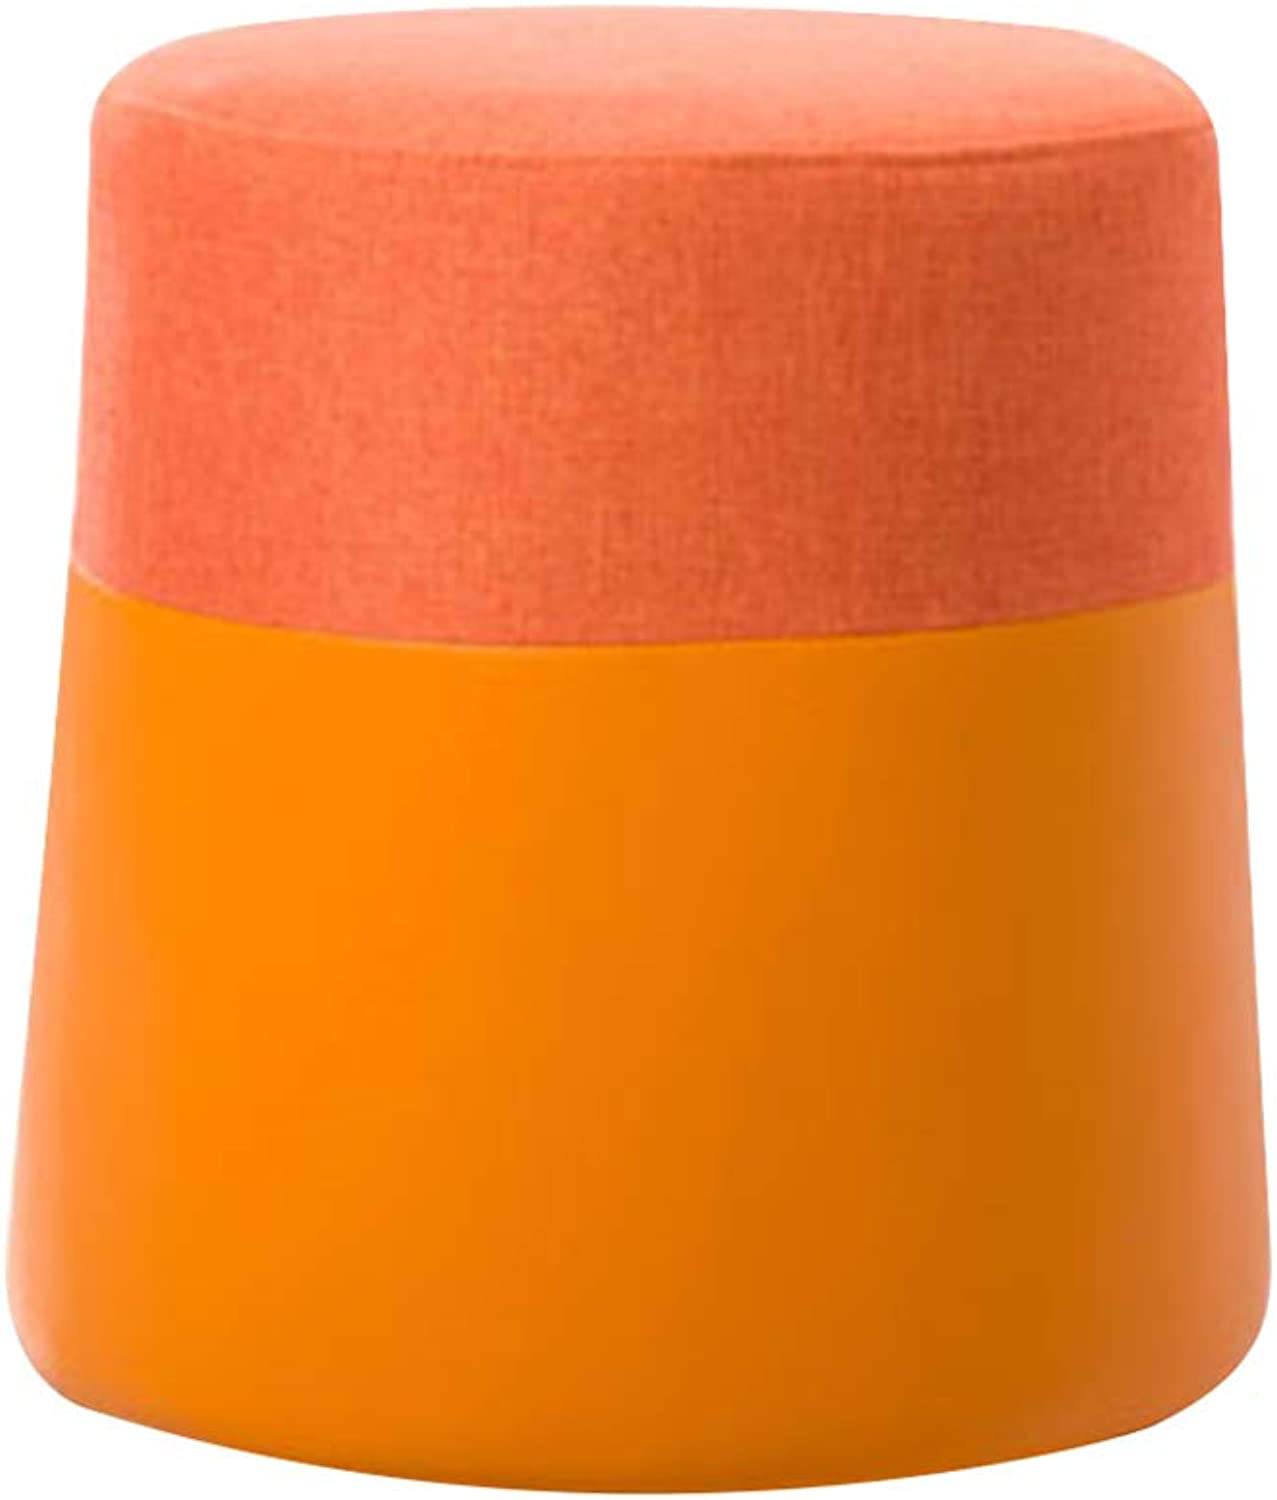 Dressers & Chests of Drawers Makeup Stool Fashion Round Stool Fabric Sofa Stool Creative Makeup Stool Home Dressing Dressing Room Bench (color   orange, Size   38  38  40cm)